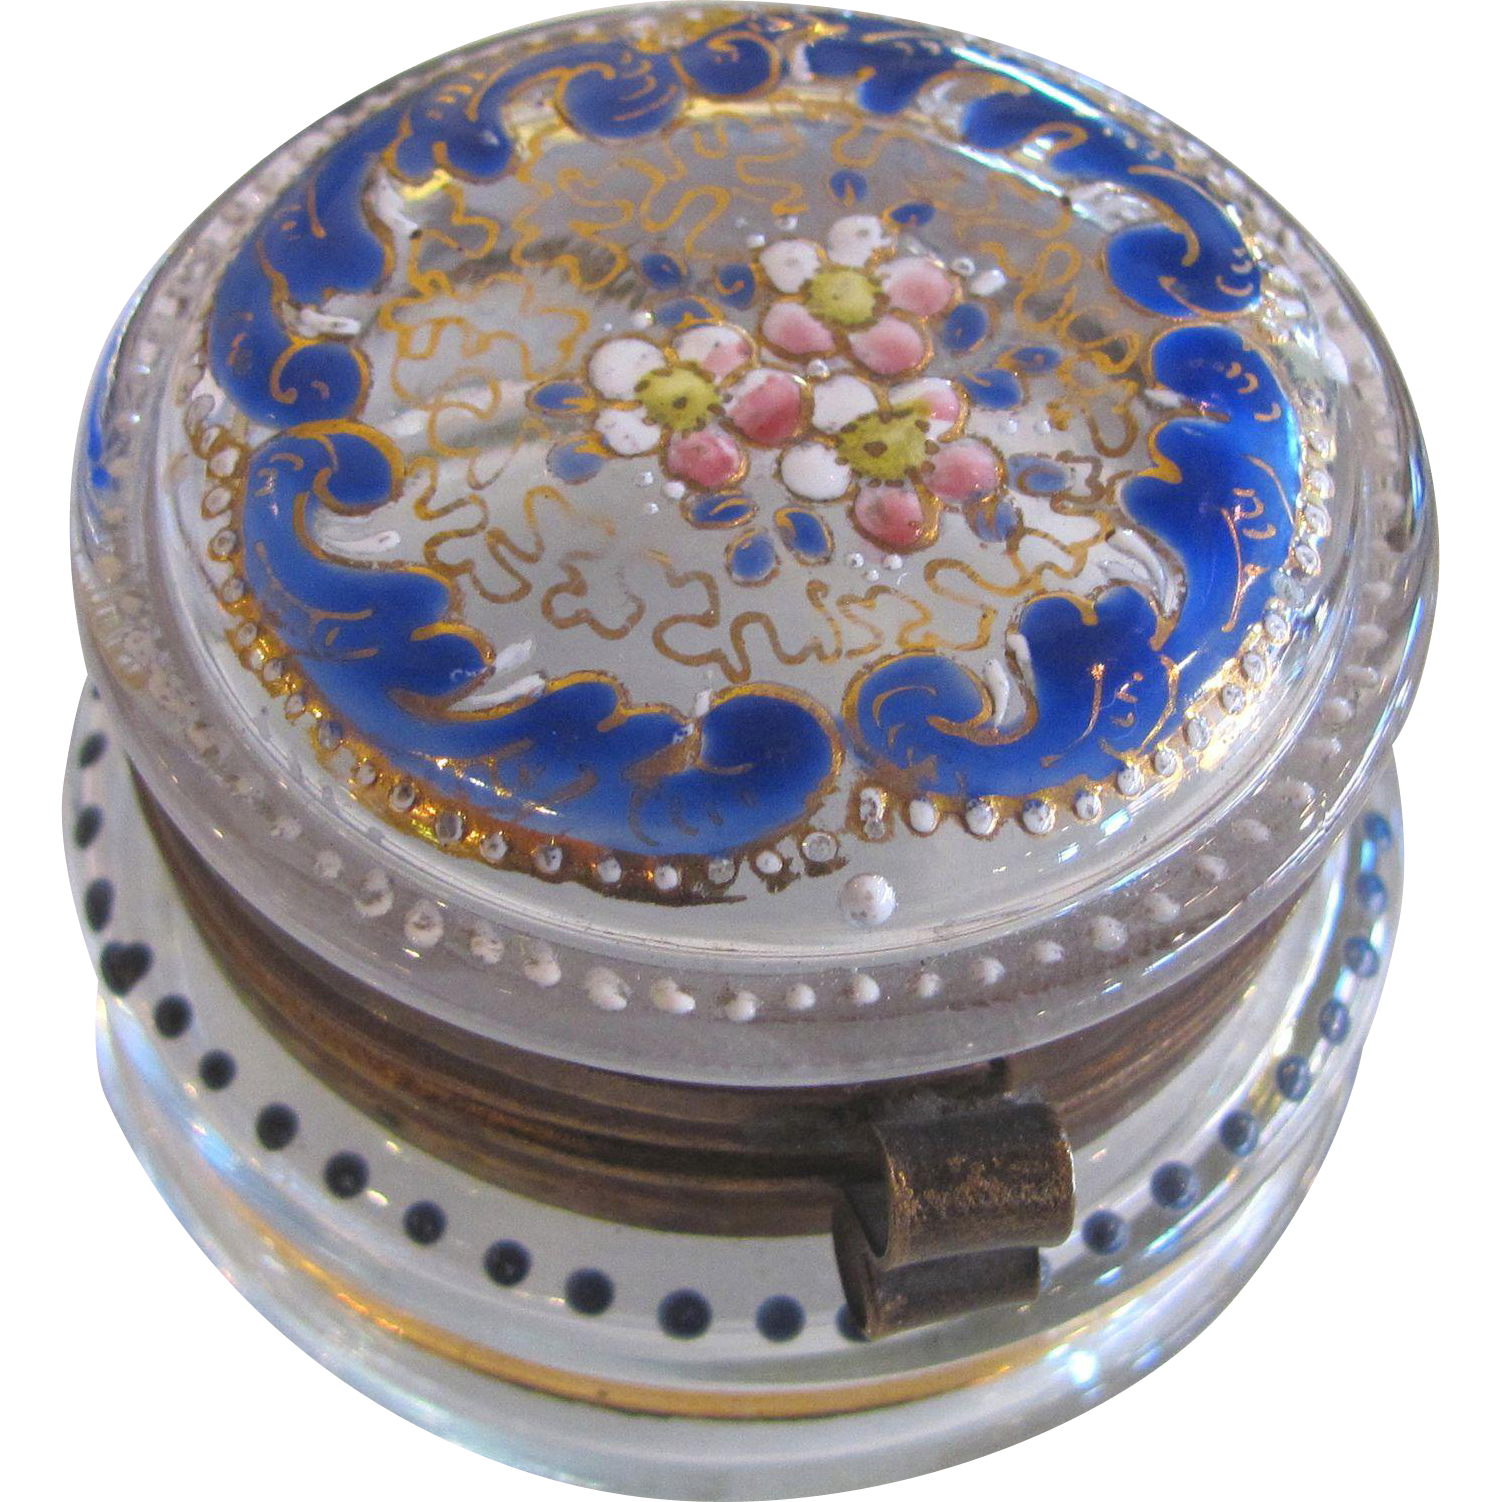 Antique Moser Style Enameled Glass Snuff Box 19th Century